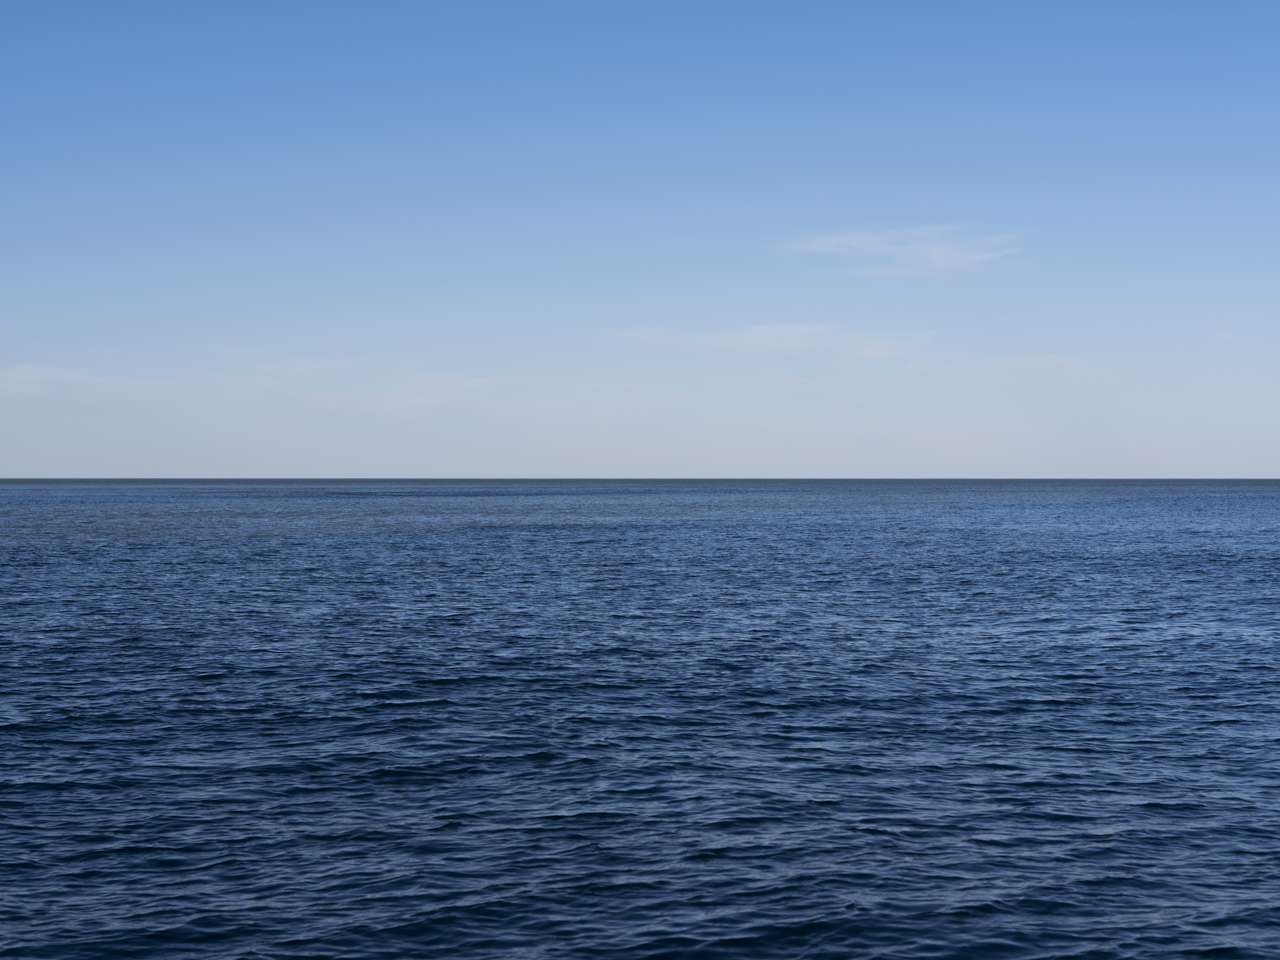 clear blue skies with whispy clouds on the horizon with slight rippling lake water